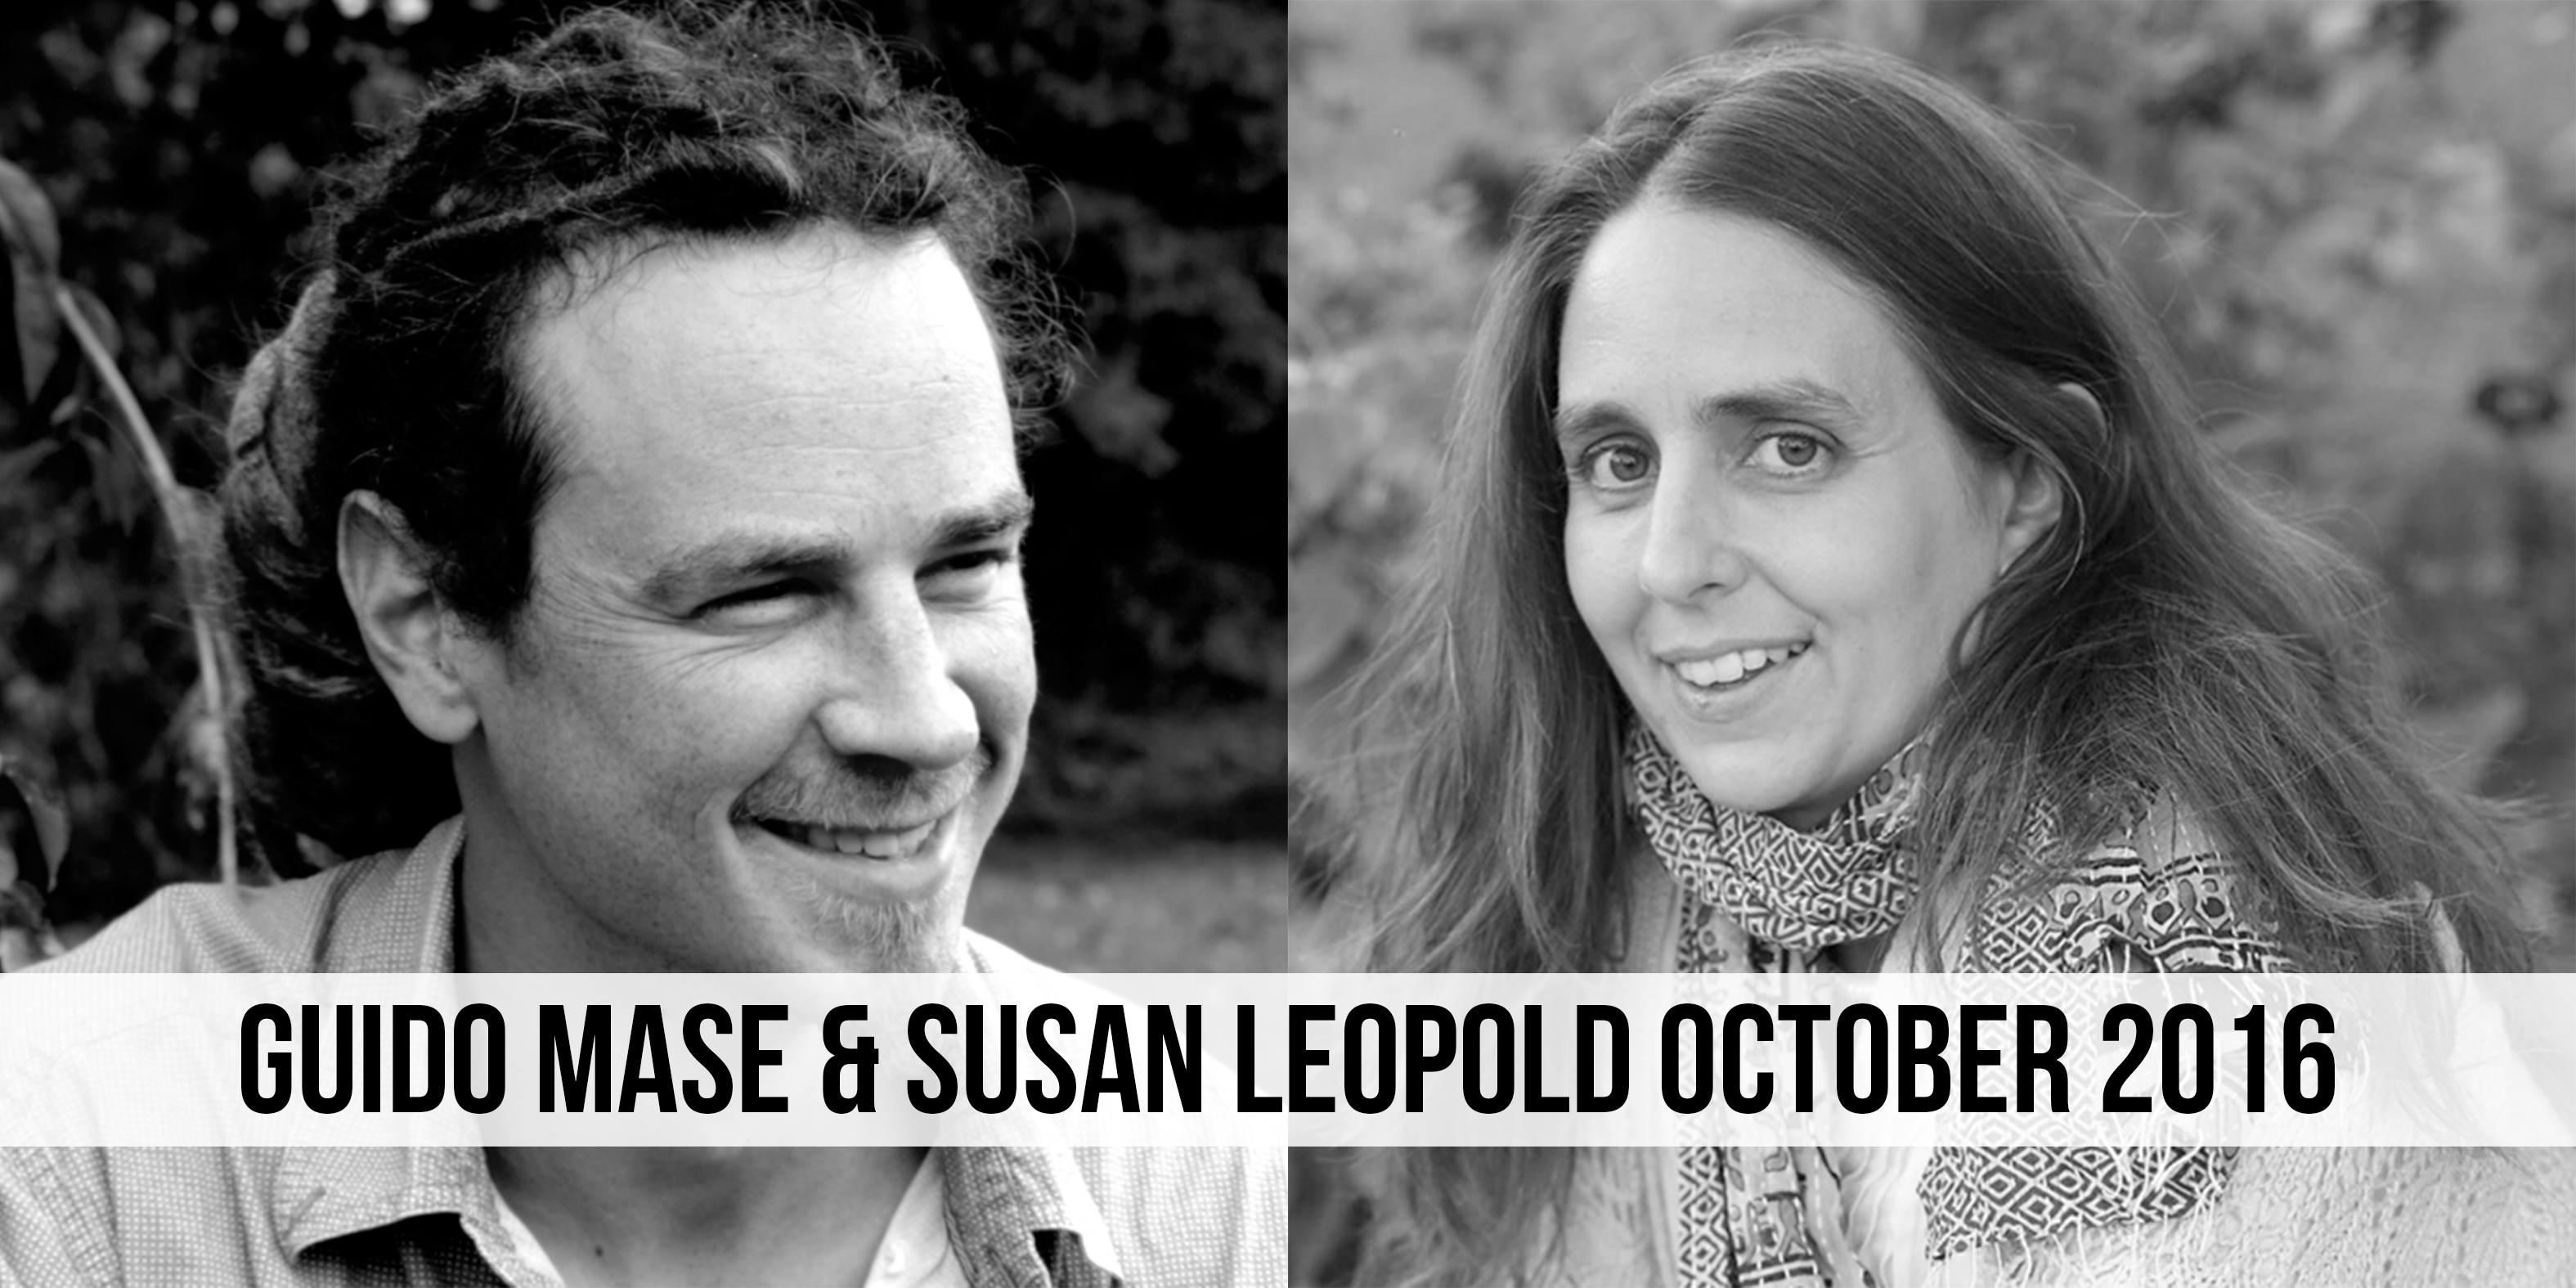 Guido Mase and Susan Leopold